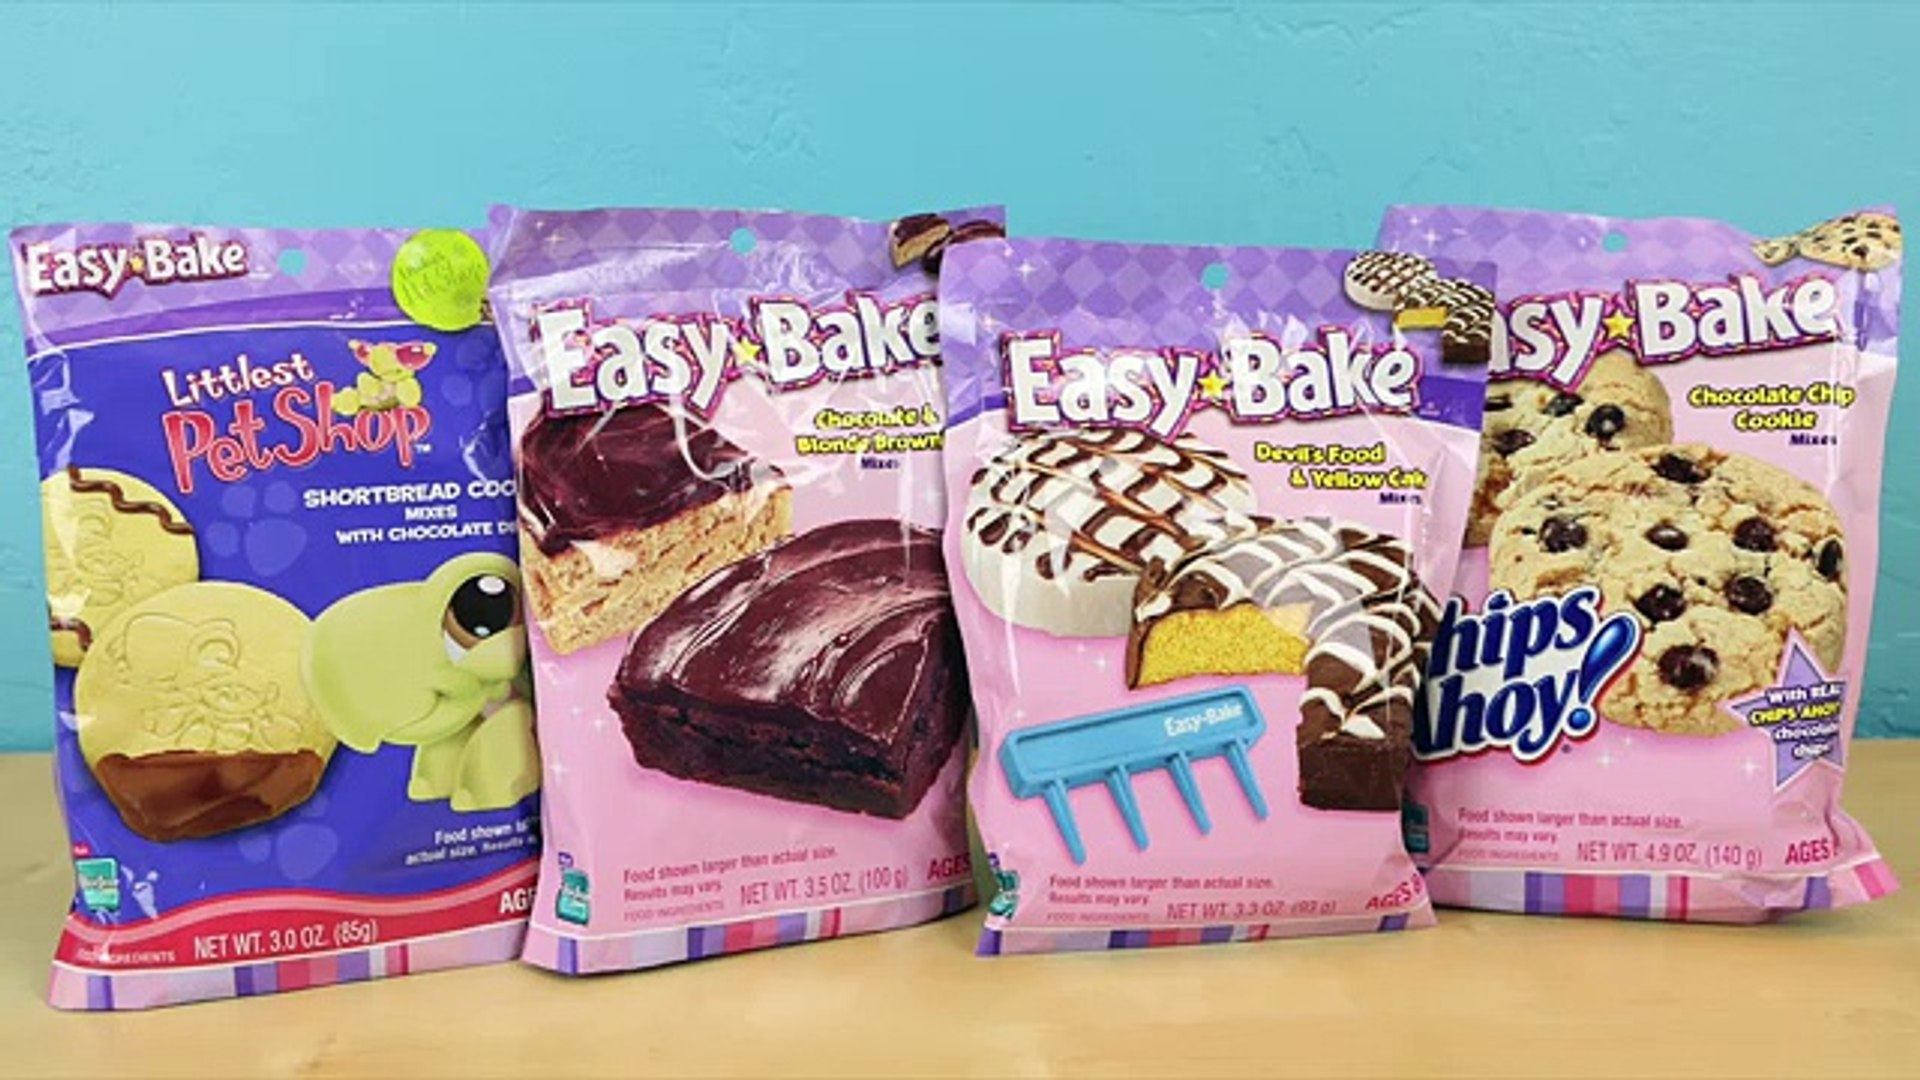 Easy Bake Oven 2006 - Which Baking Mix Did I Make? With Taste Test!